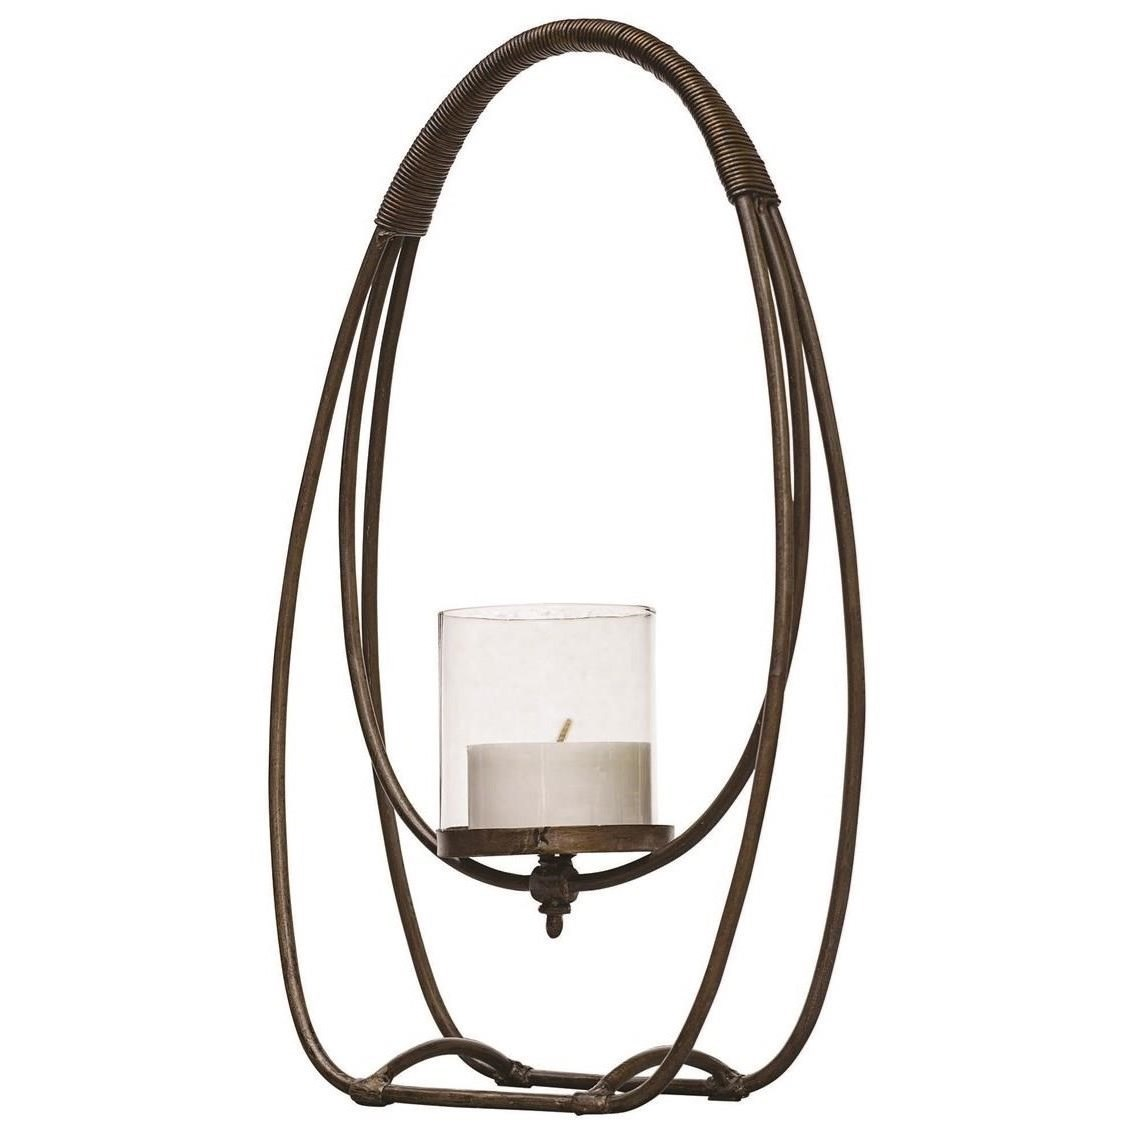 Accessories - Candle Holders Rayne Open Iron Candleholder by Uttermost at Furniture and ApplianceMart